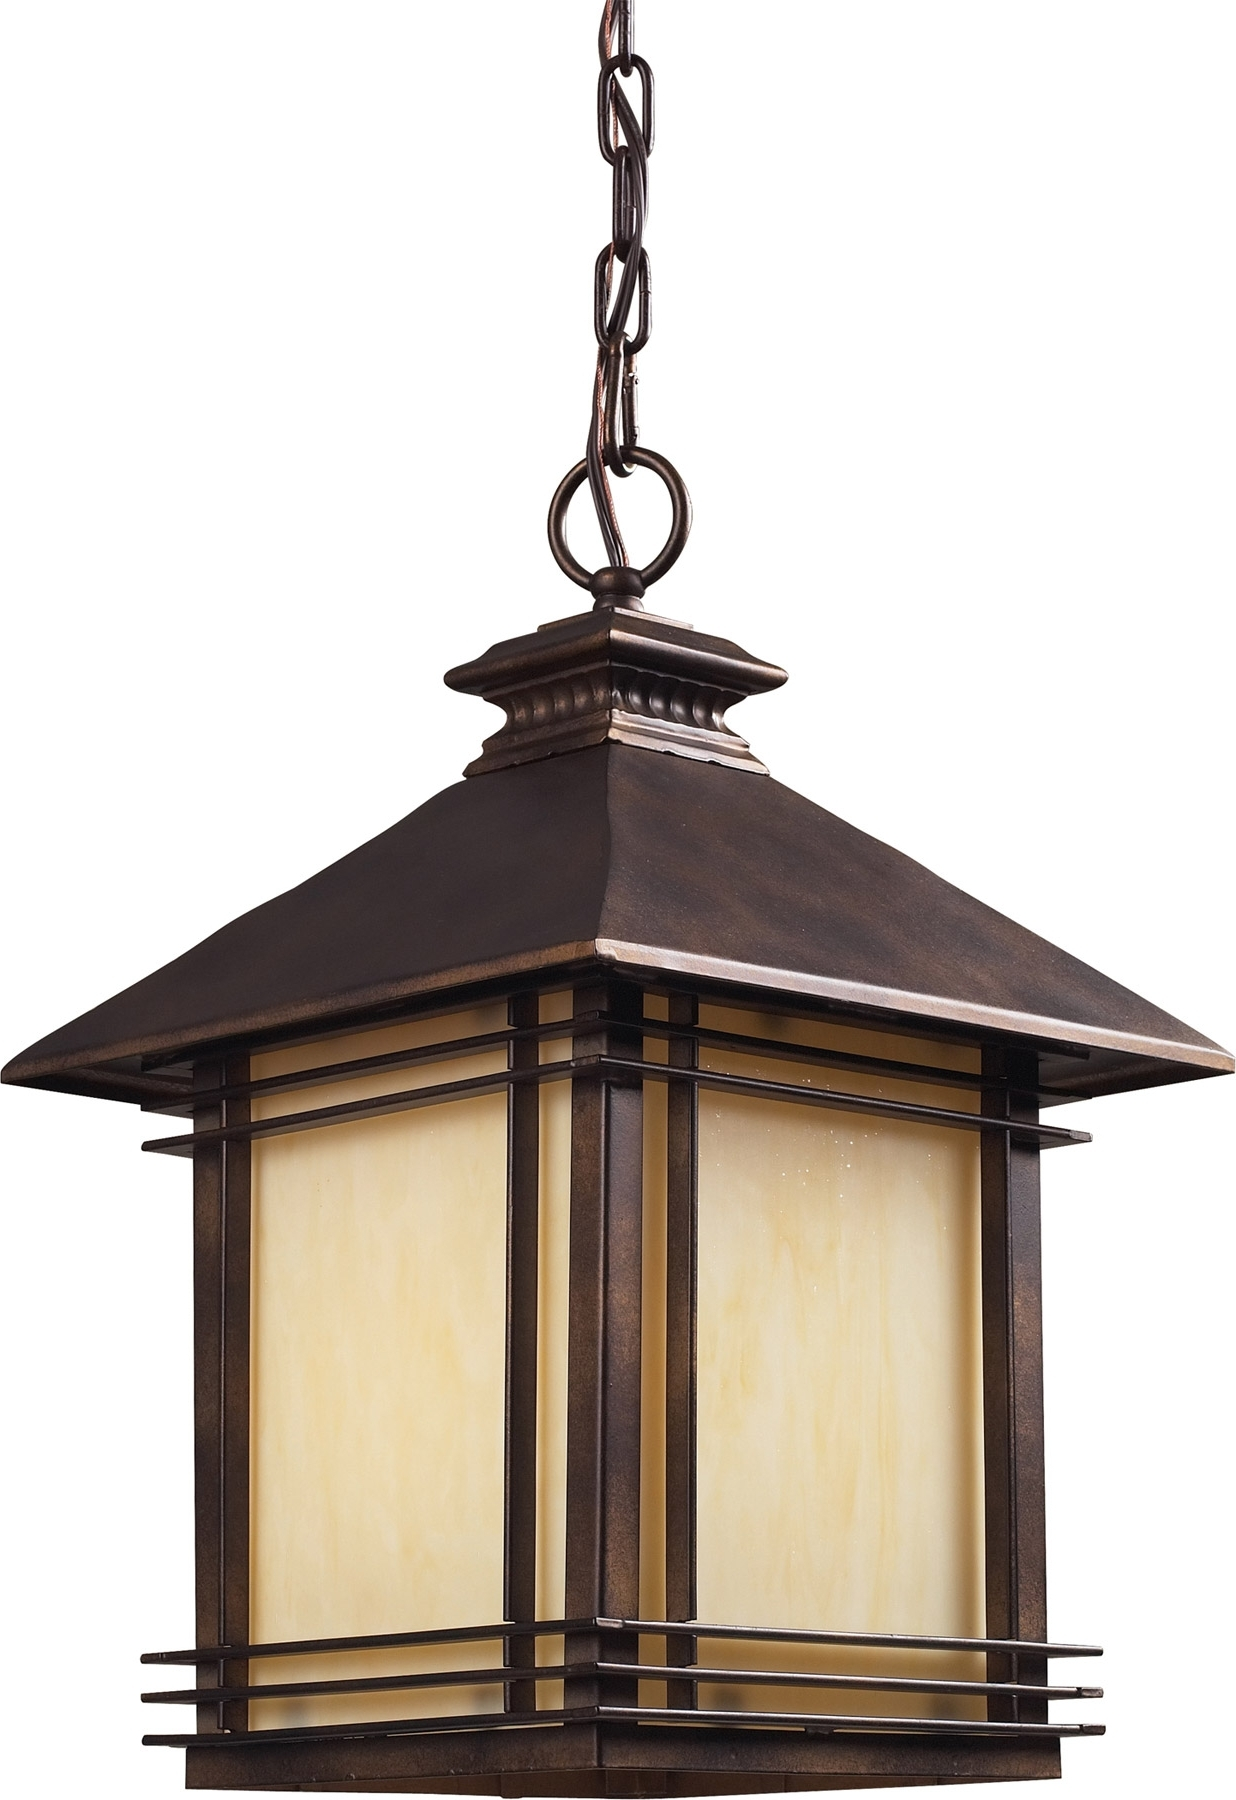 Trendy Outdoor Hanging Lanterns For Lighting 42103/1 Blackwell Outdoor Hanging Lantern (View 2 of 20)